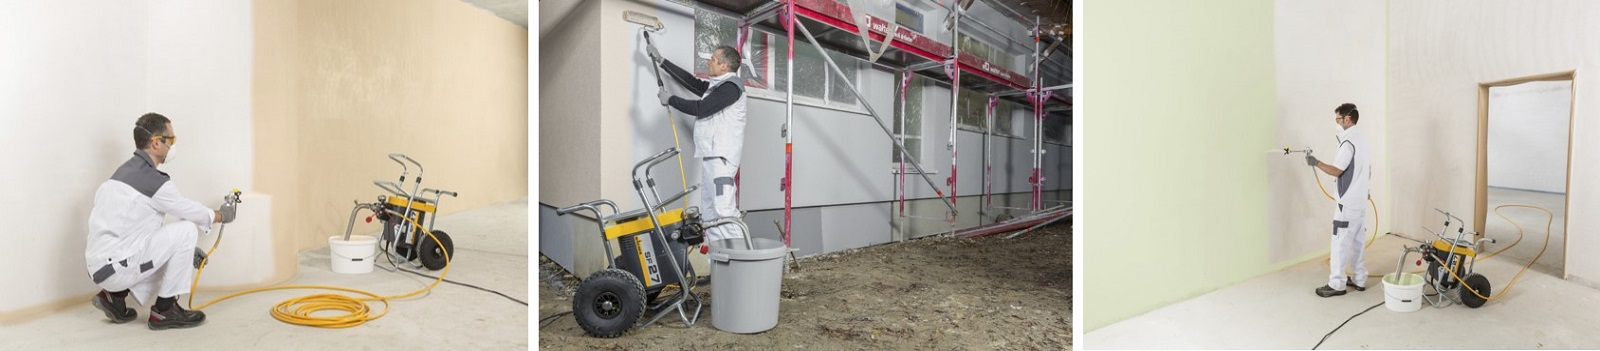 Yorkshire Spray Services Ltd – Wagner Super Finish SF27 Action